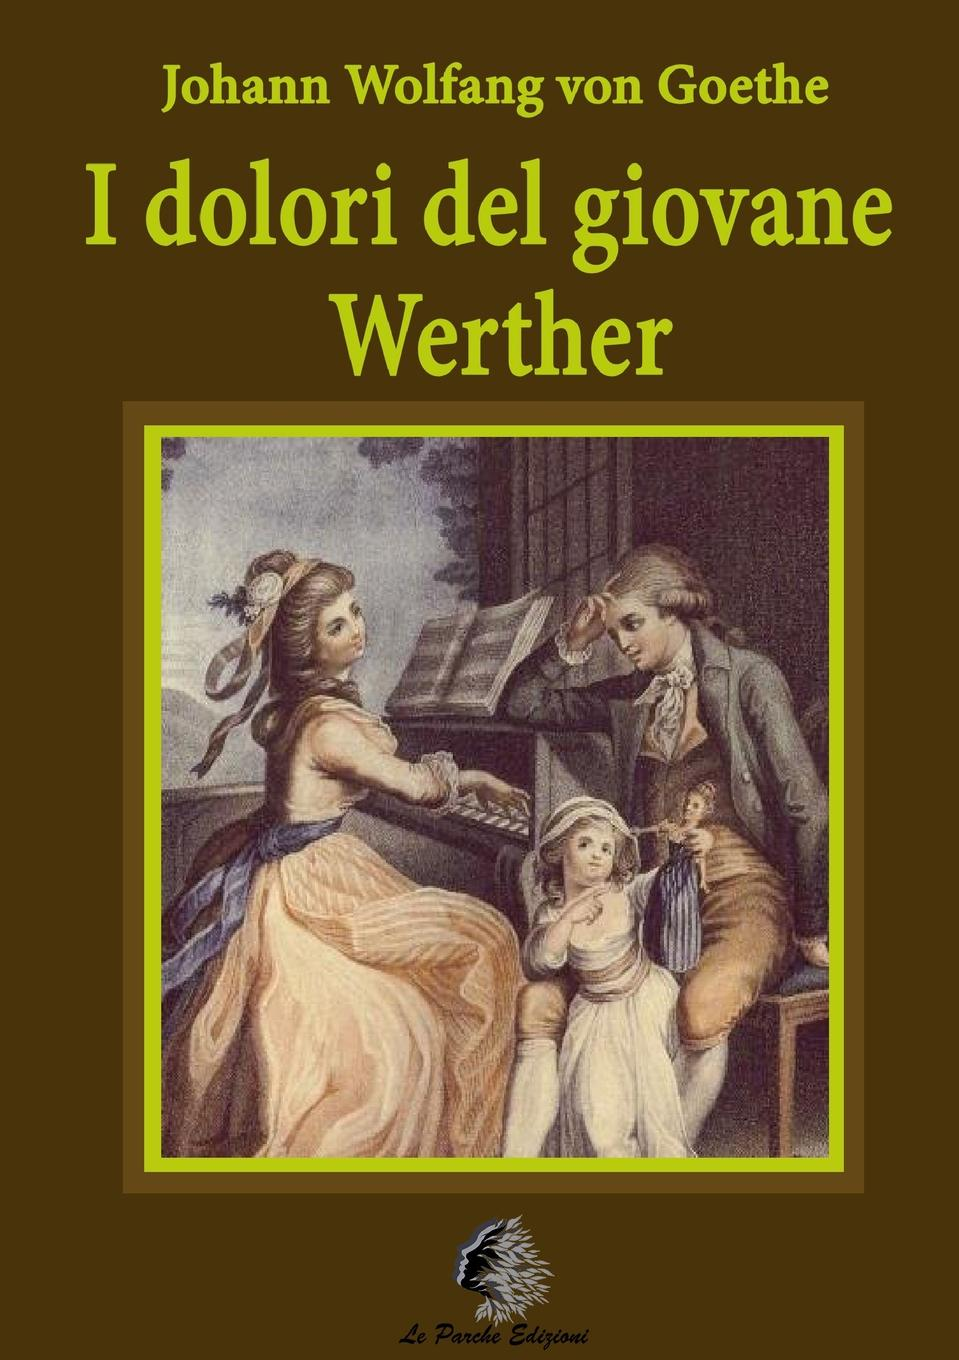 Johann Wolfgang von Goethe I dolori del giovane Werther johann wolfgang von goethe the sorrows of young werther